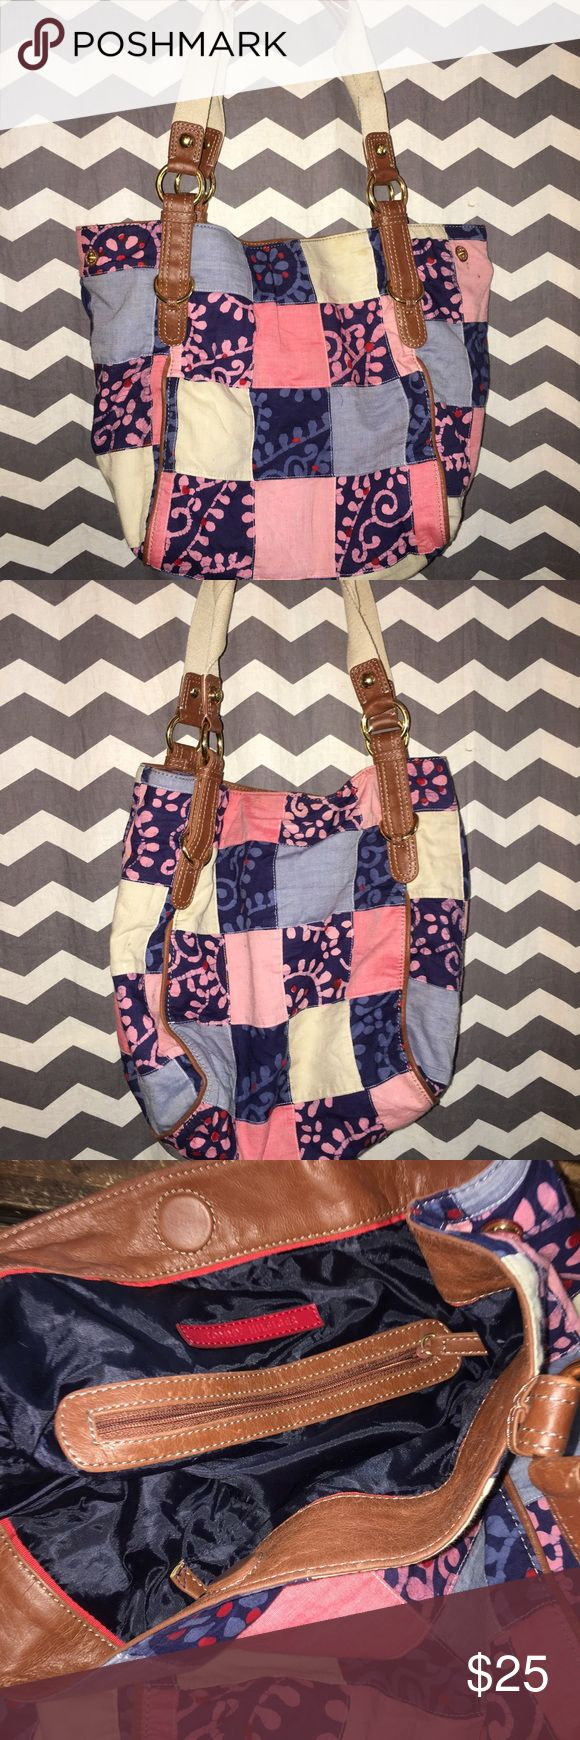 Selling this Tommy Hilfiger patchwork shoulder bag on Poshmark! My username is: seharget. #shopmycloset #poshmark #fashion #shopping #style #forsale #Tommy Hilfiger #Handbags